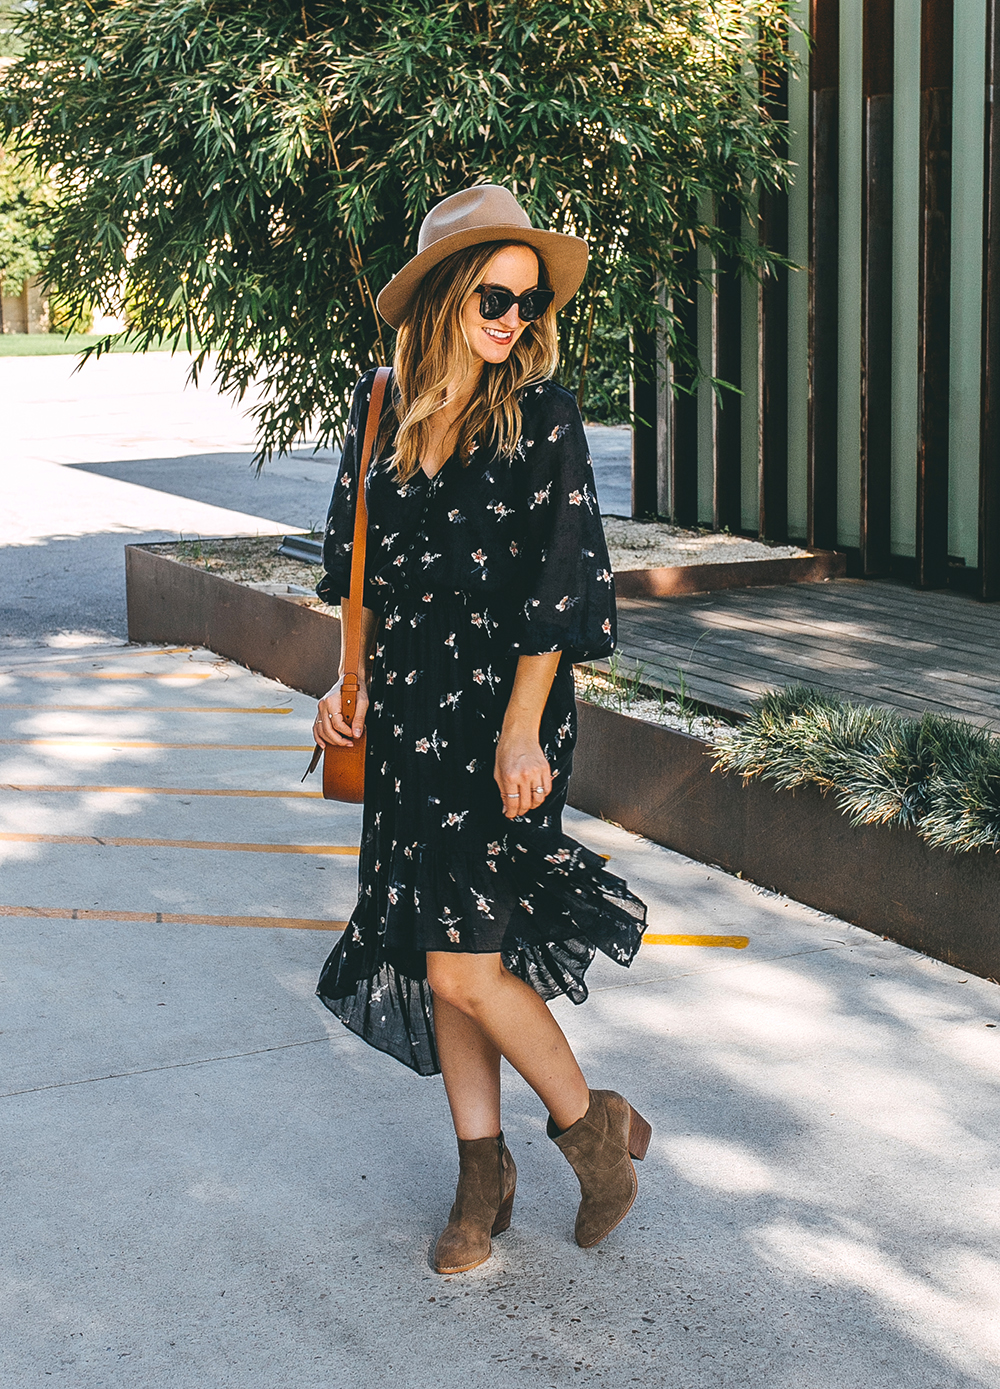 livvyland-blog-olivia-watson-austin-texas-fashion-blogger-domain-northside-joie-fall-dress-ankle-booties-outfit